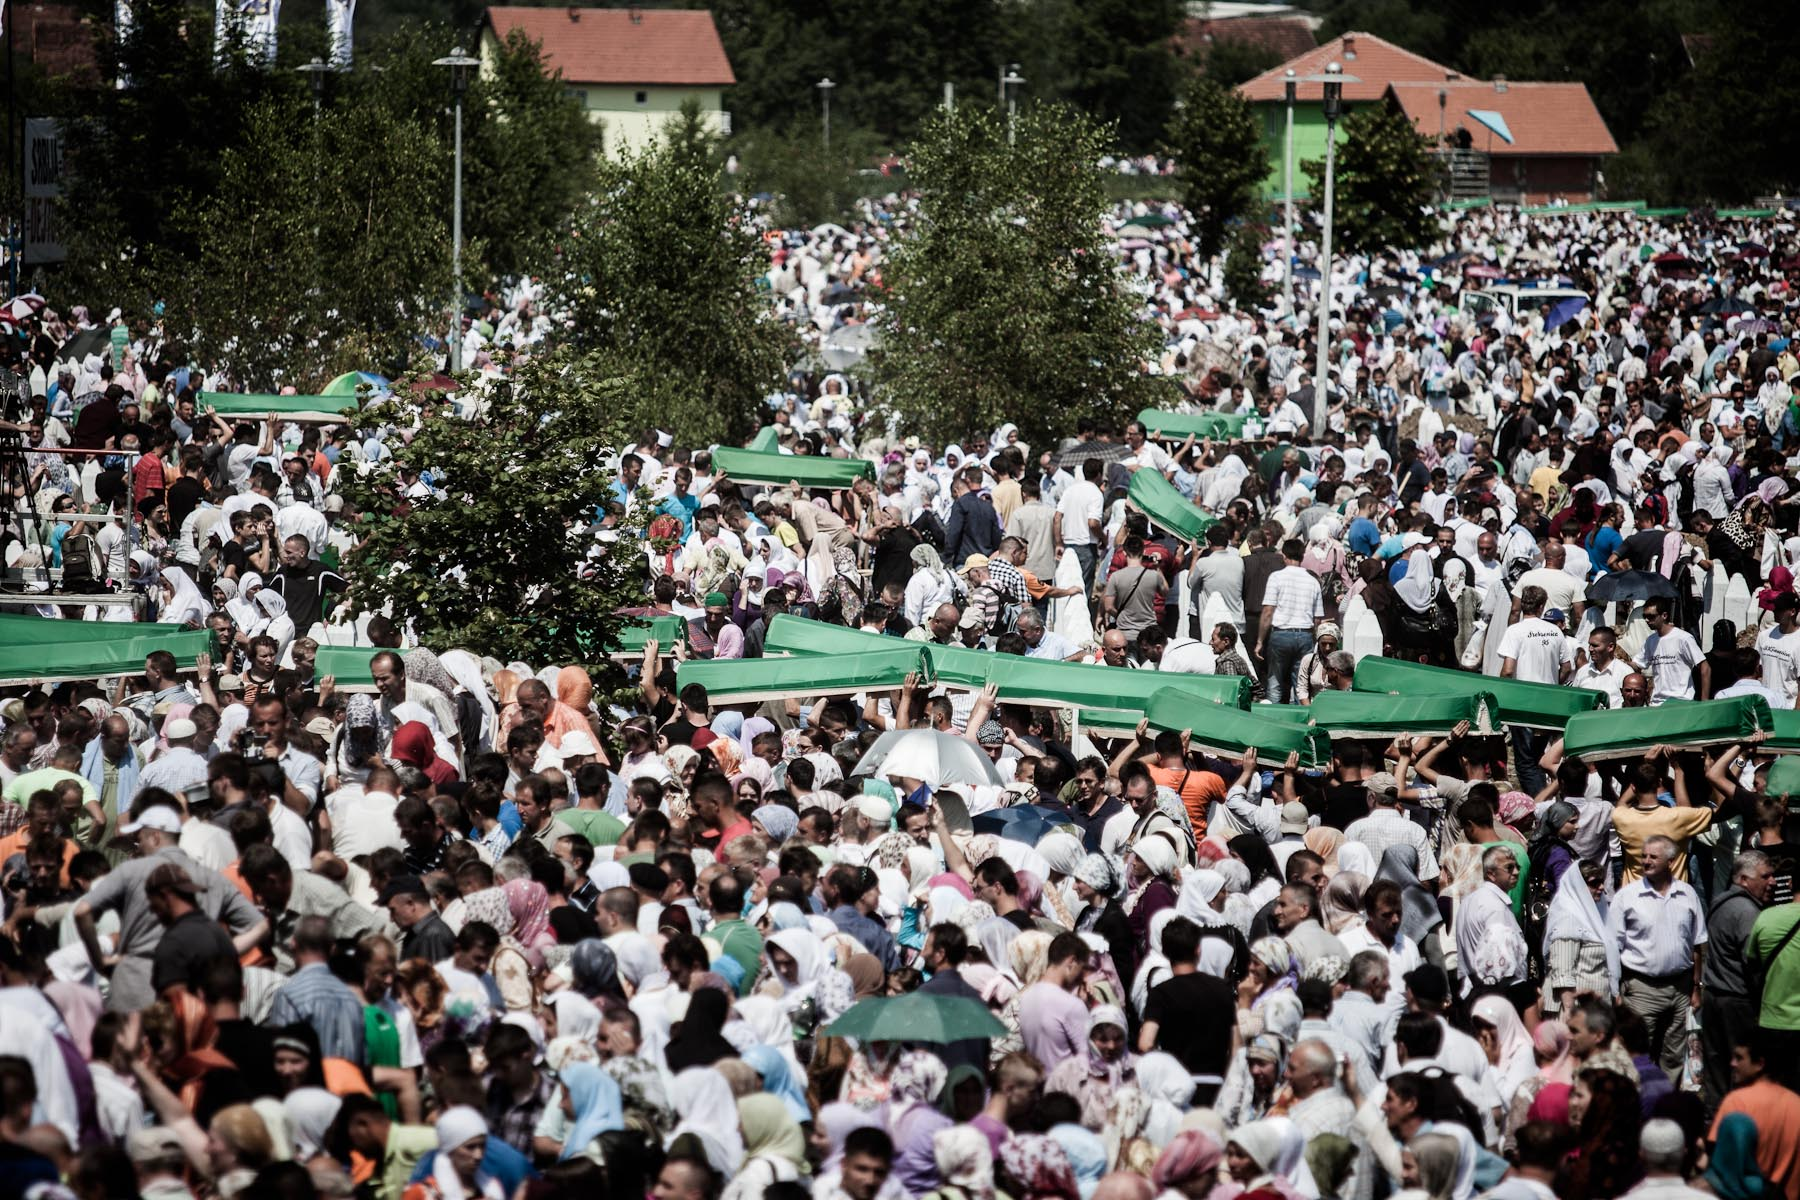 Coffins are taken to the graves during the mass burial of 775 newly identified victims of the 1995 Srebrenica massacre in Potocari cemetery, July 11, 2010.